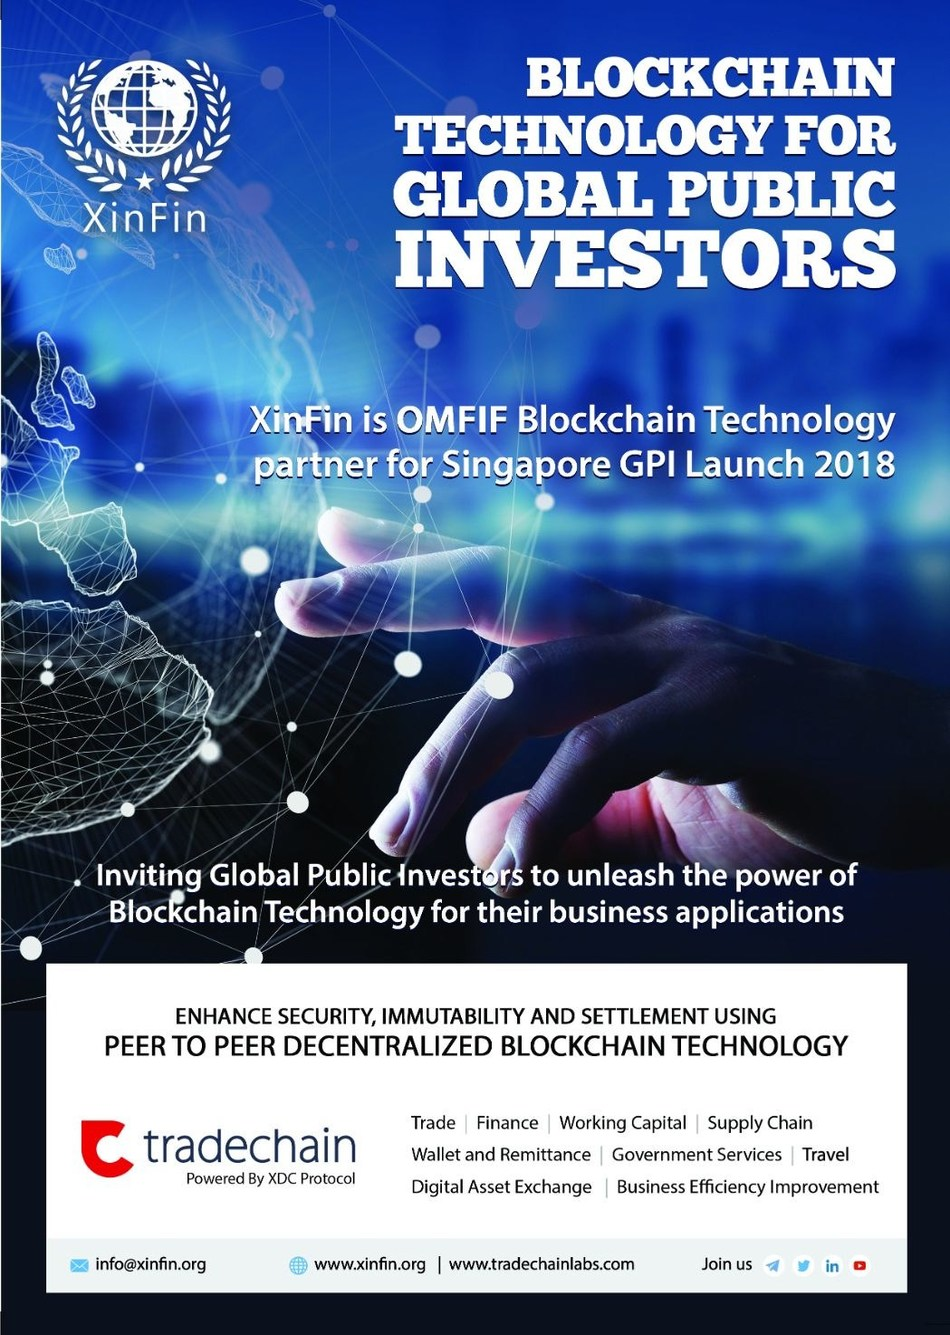 Blockchain Platform XinFin.io partners with OMFIF for Global Public Investors 2018 Launch (PRNewsfoto/XinFin)